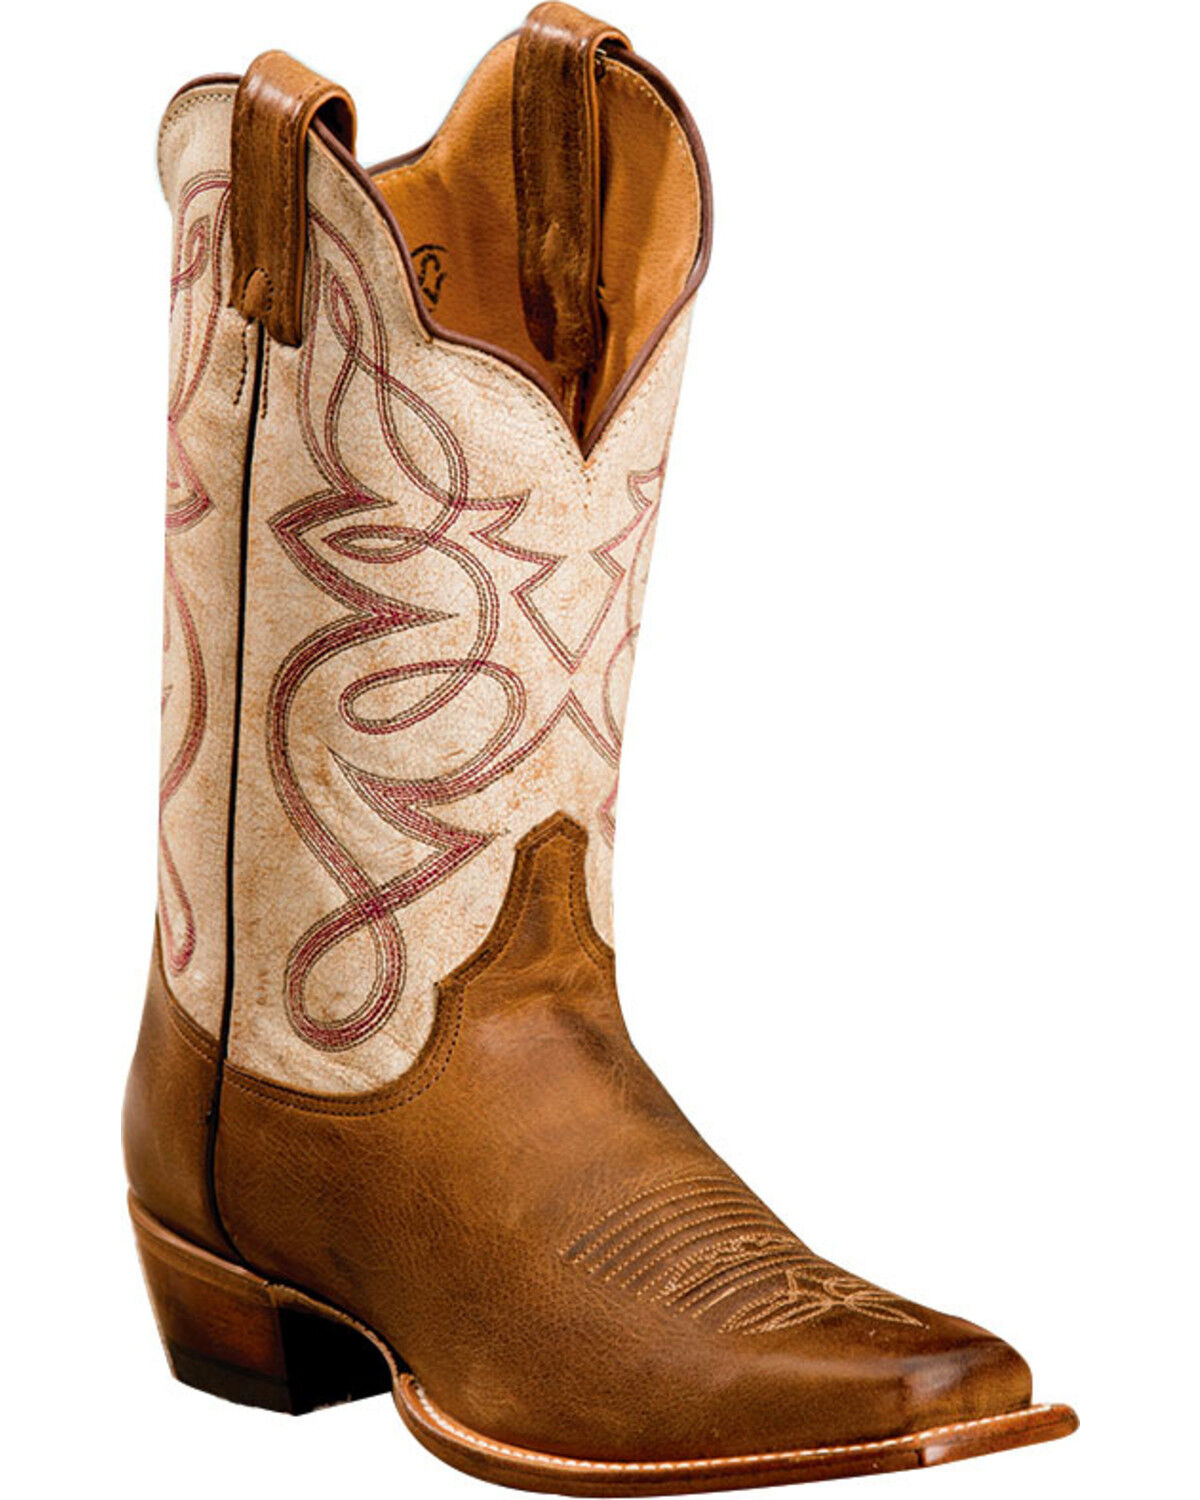 Justin Women's Distressed Leather